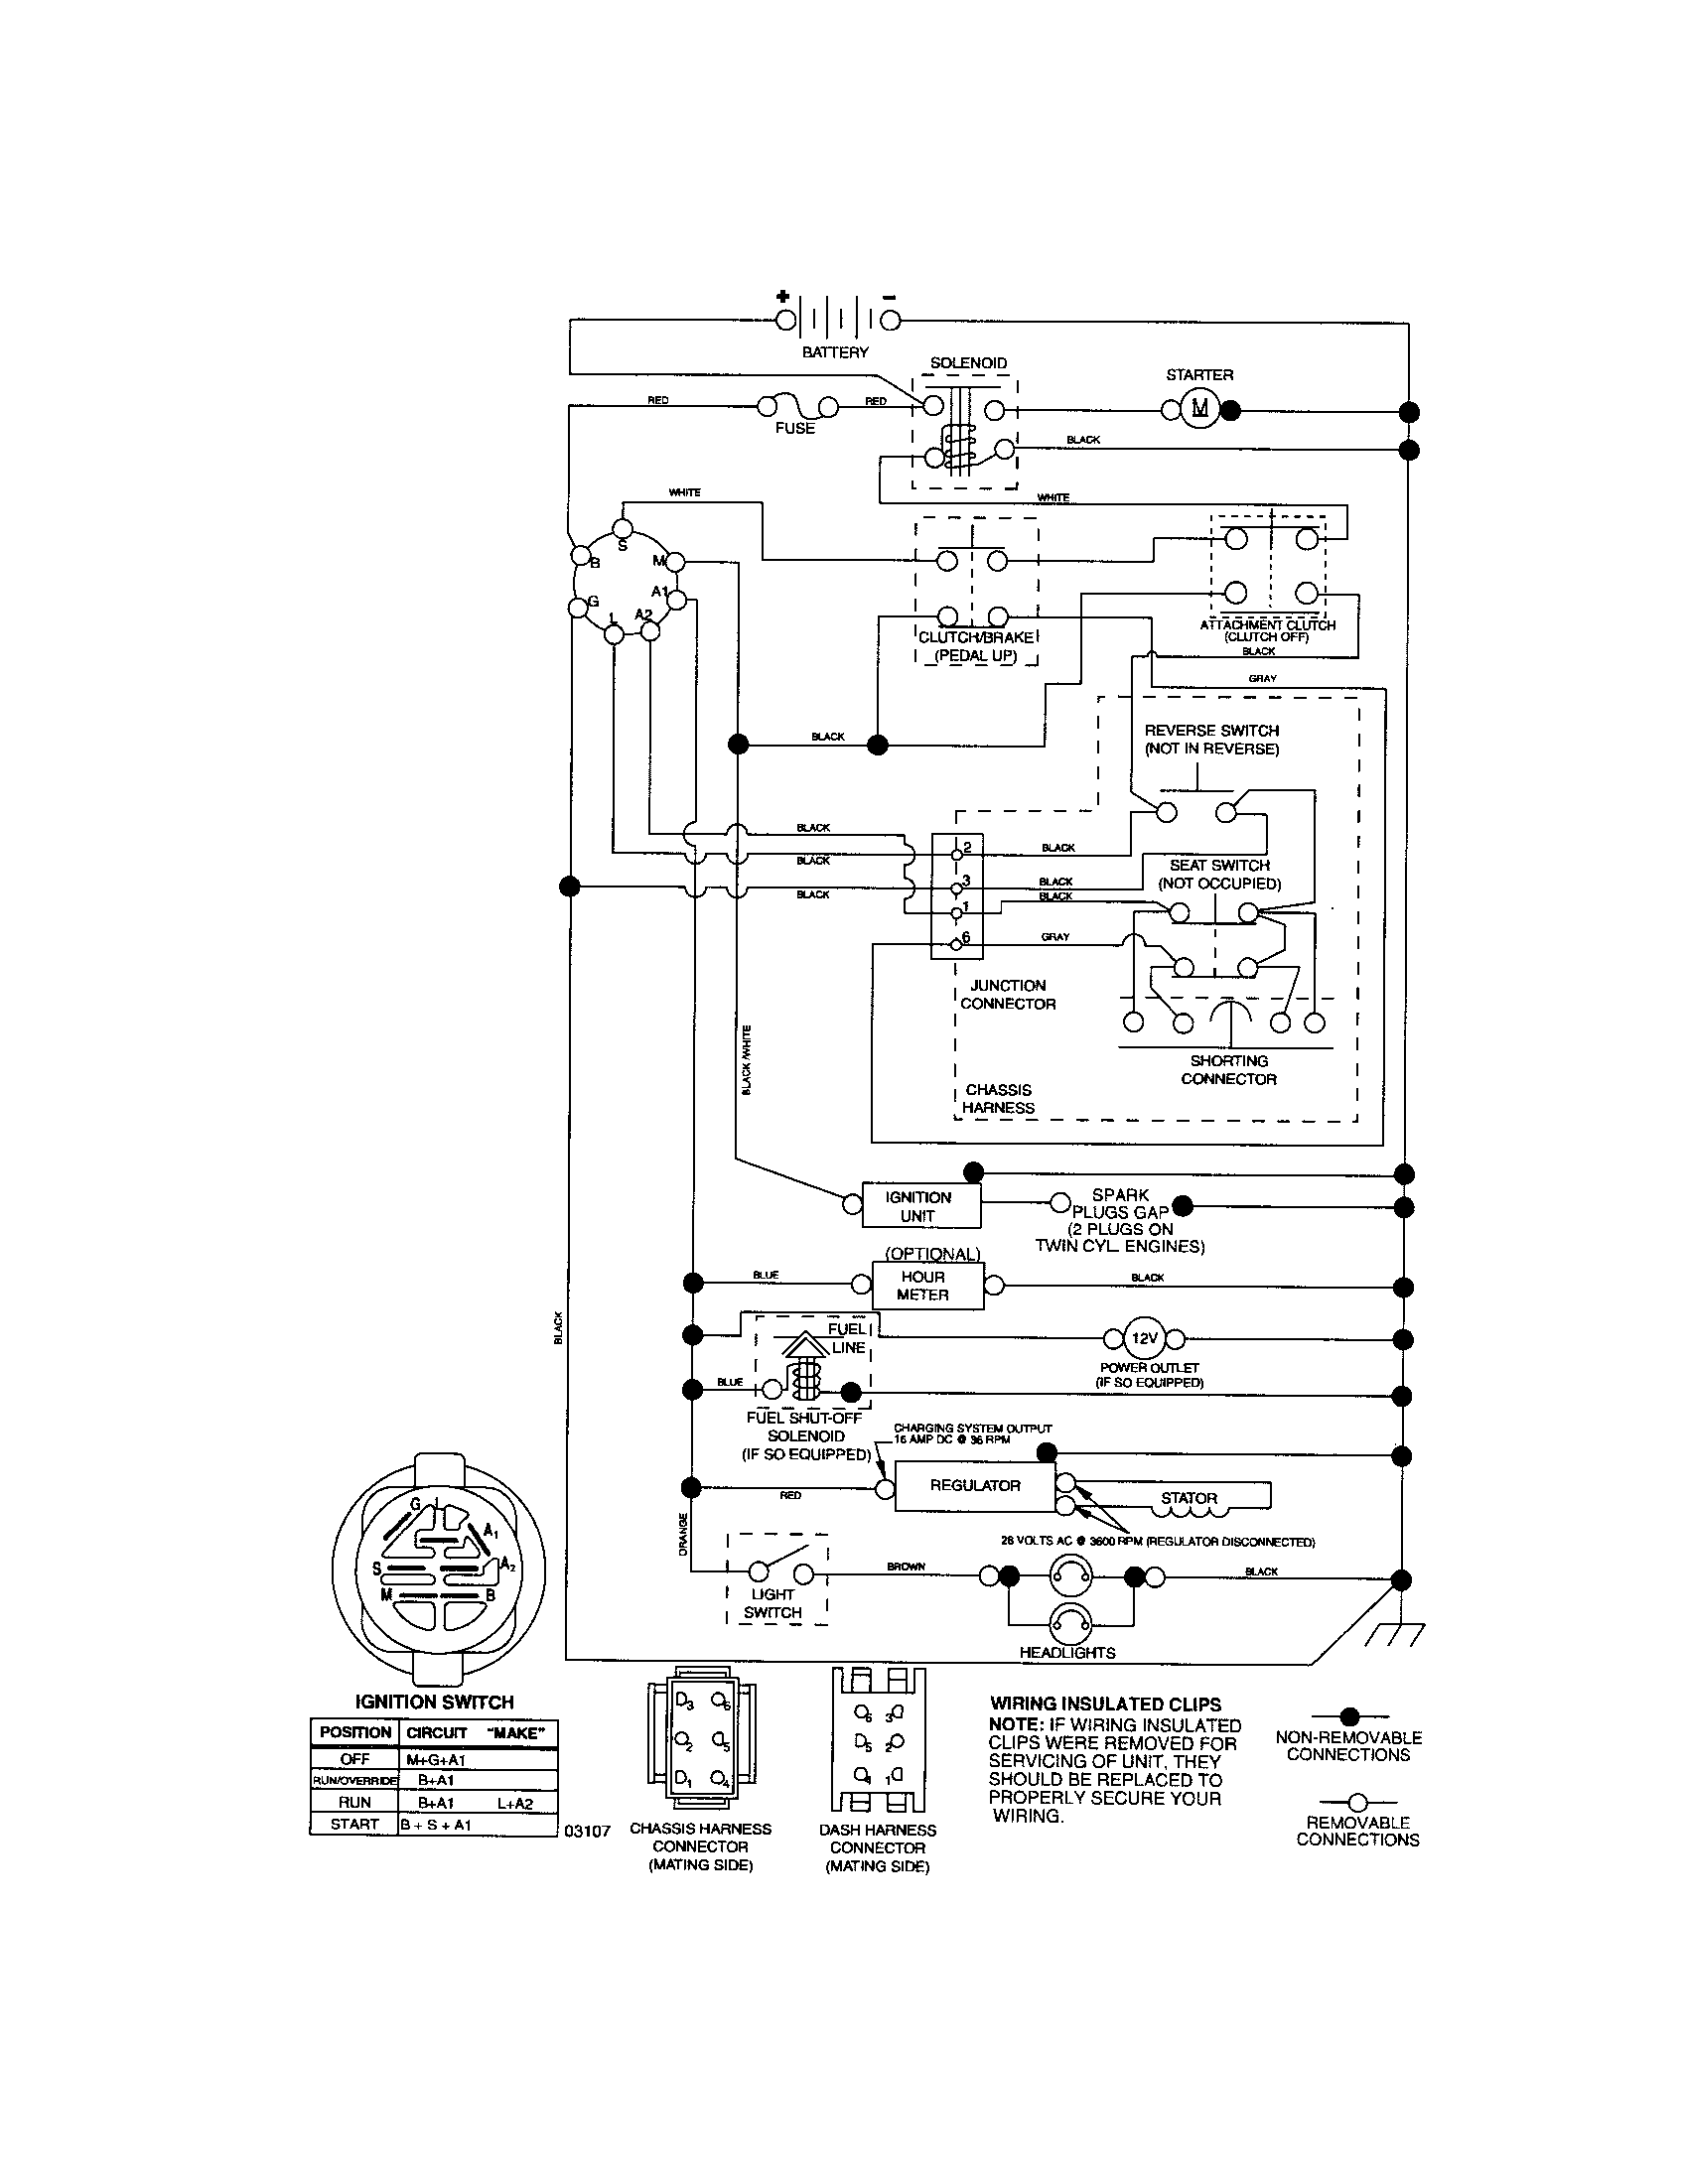 small resolution of craftsman riding mower electrical diagram wiring diagram craftsman go back gt gallery for gt briggs and stratton carburetor linkage diagram